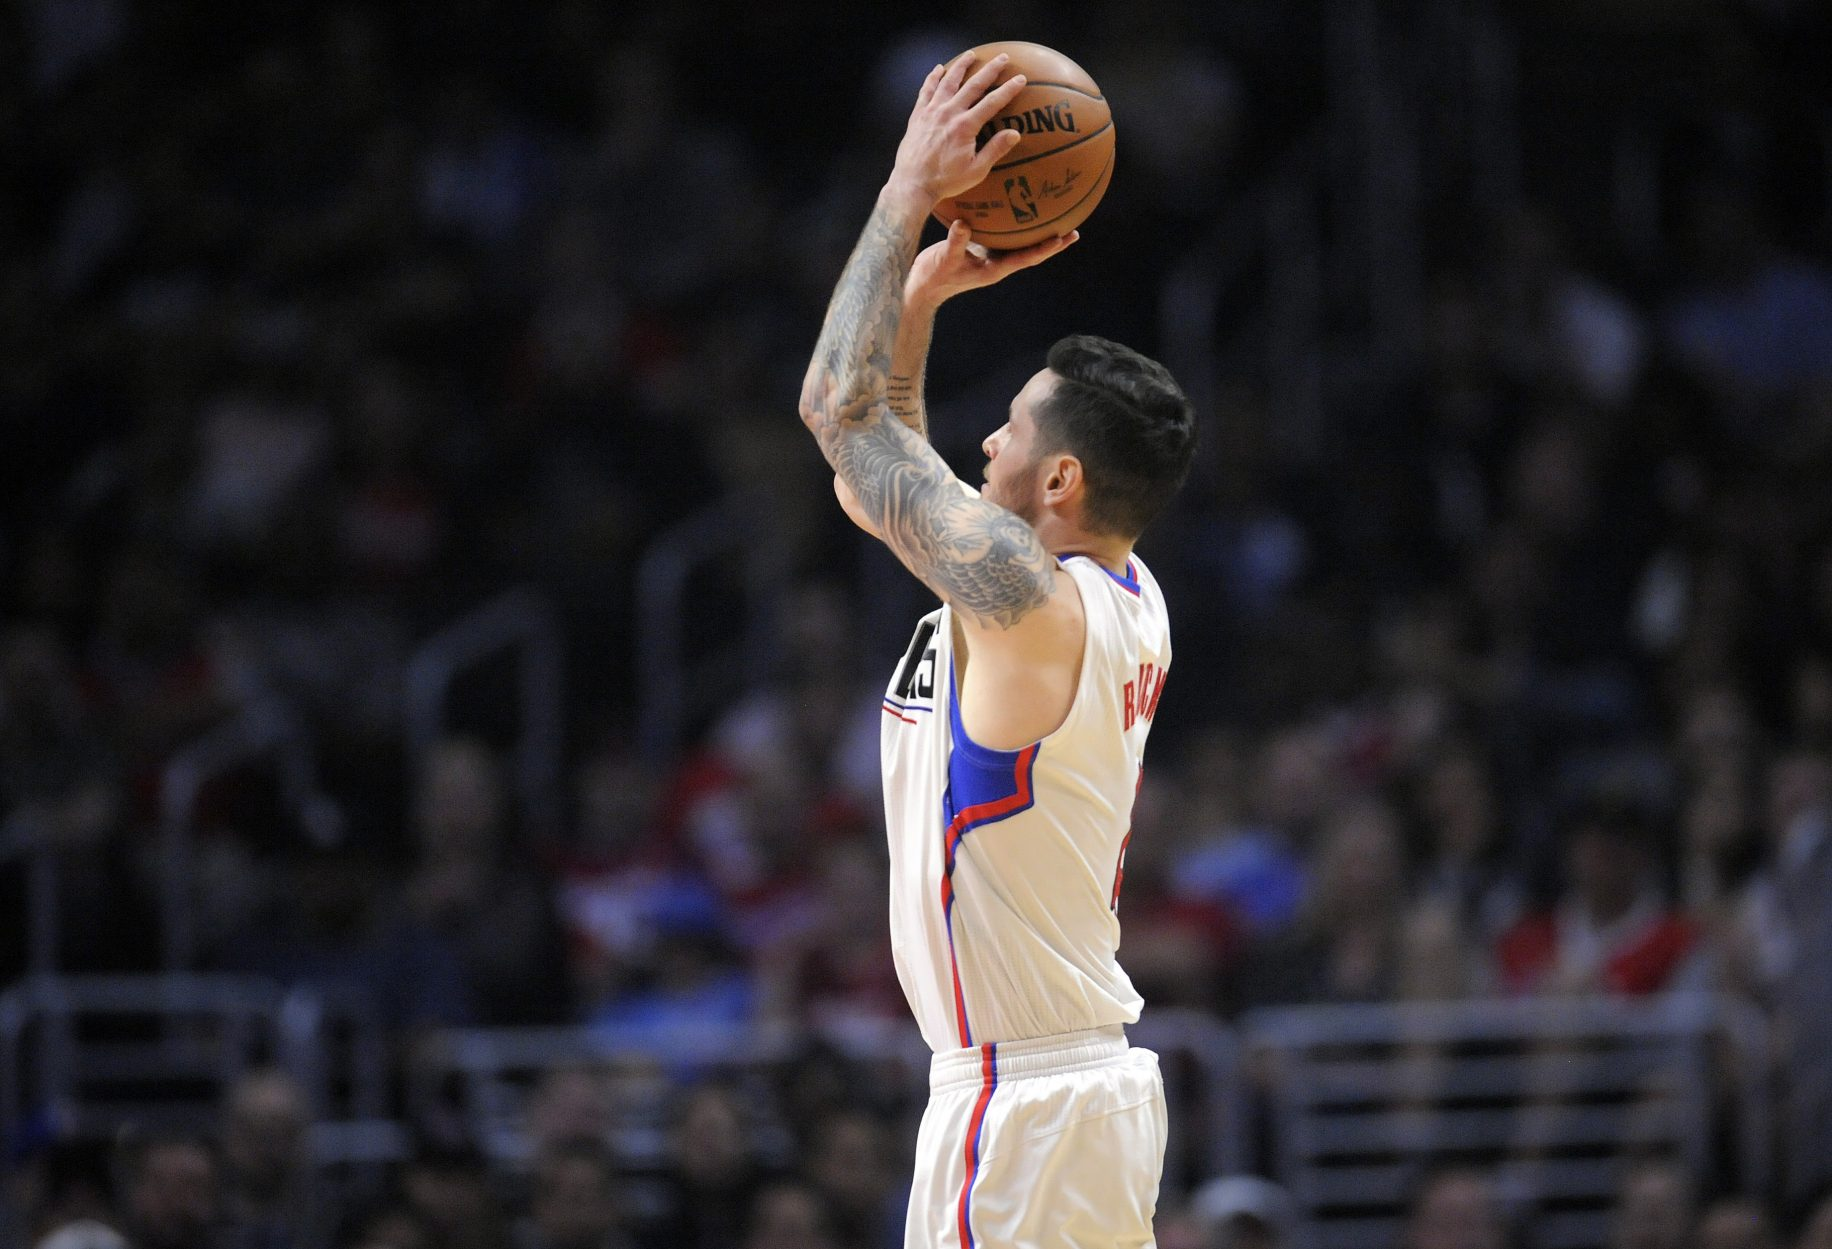 Brooklyn Nets: Time to Give Up on Signing J.J. Redick 3